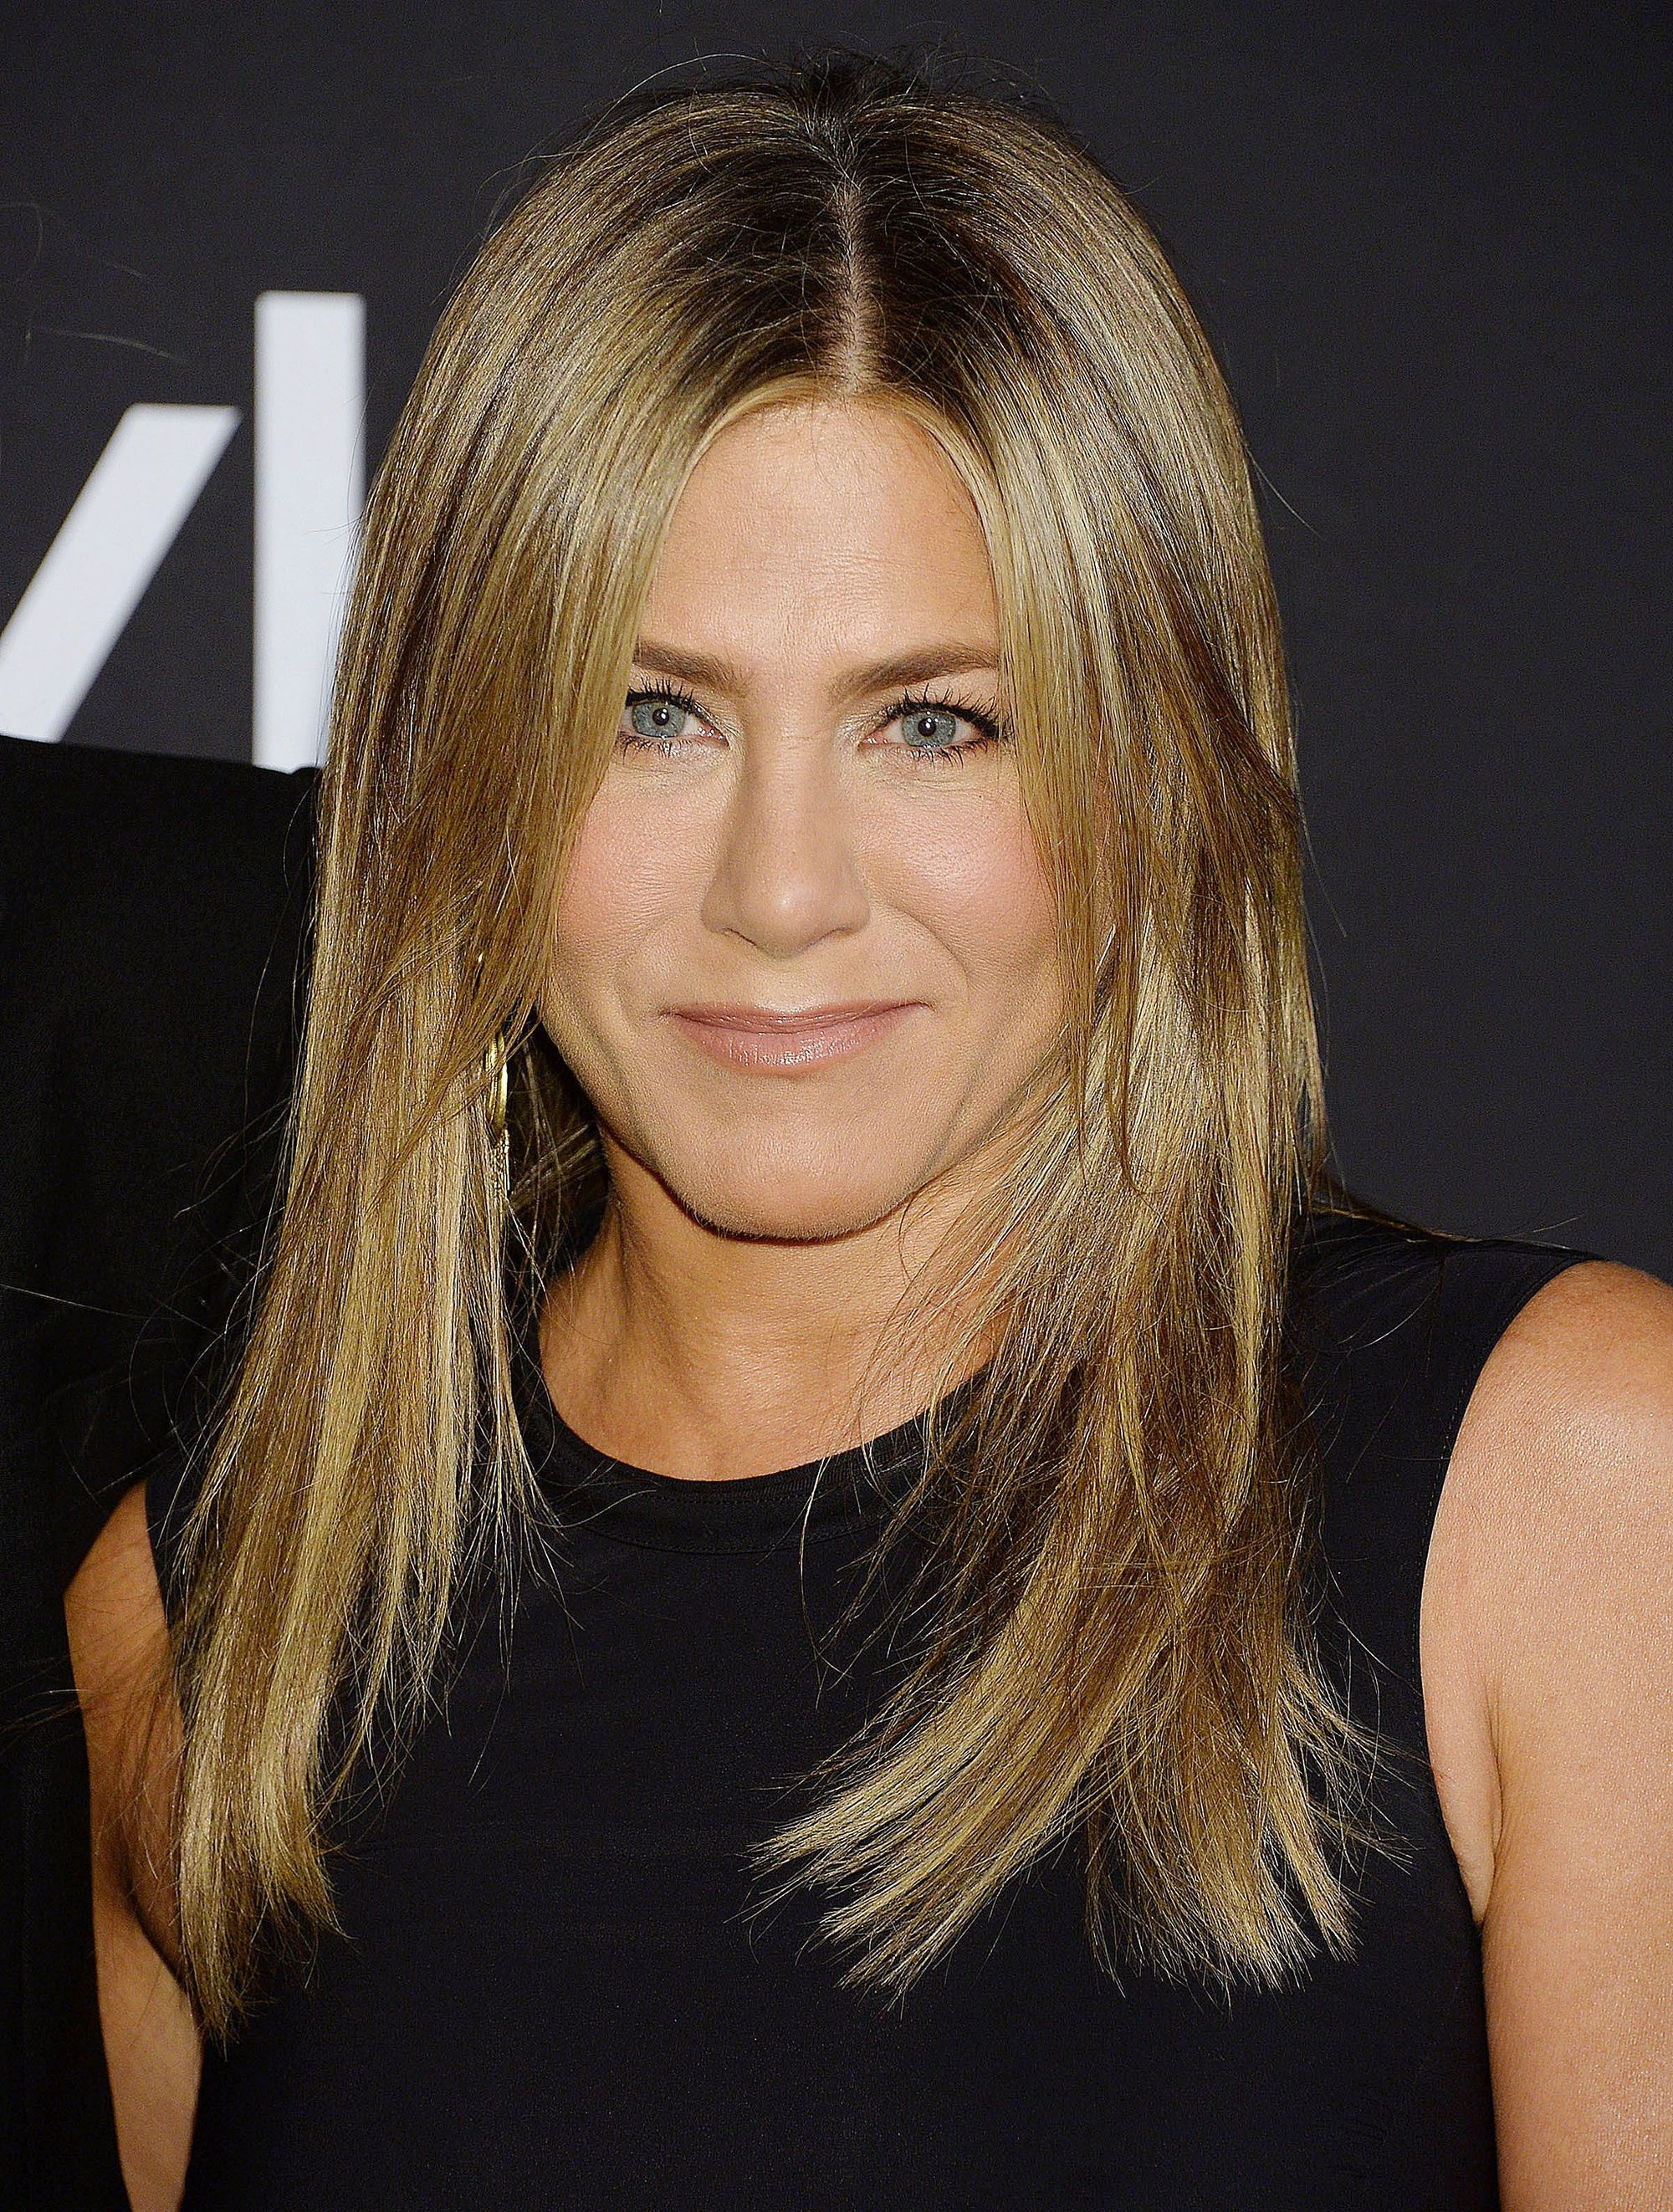 Haircuts for fine straight hair: Jennifer Aniston with bronde mid-length choppy layered hair